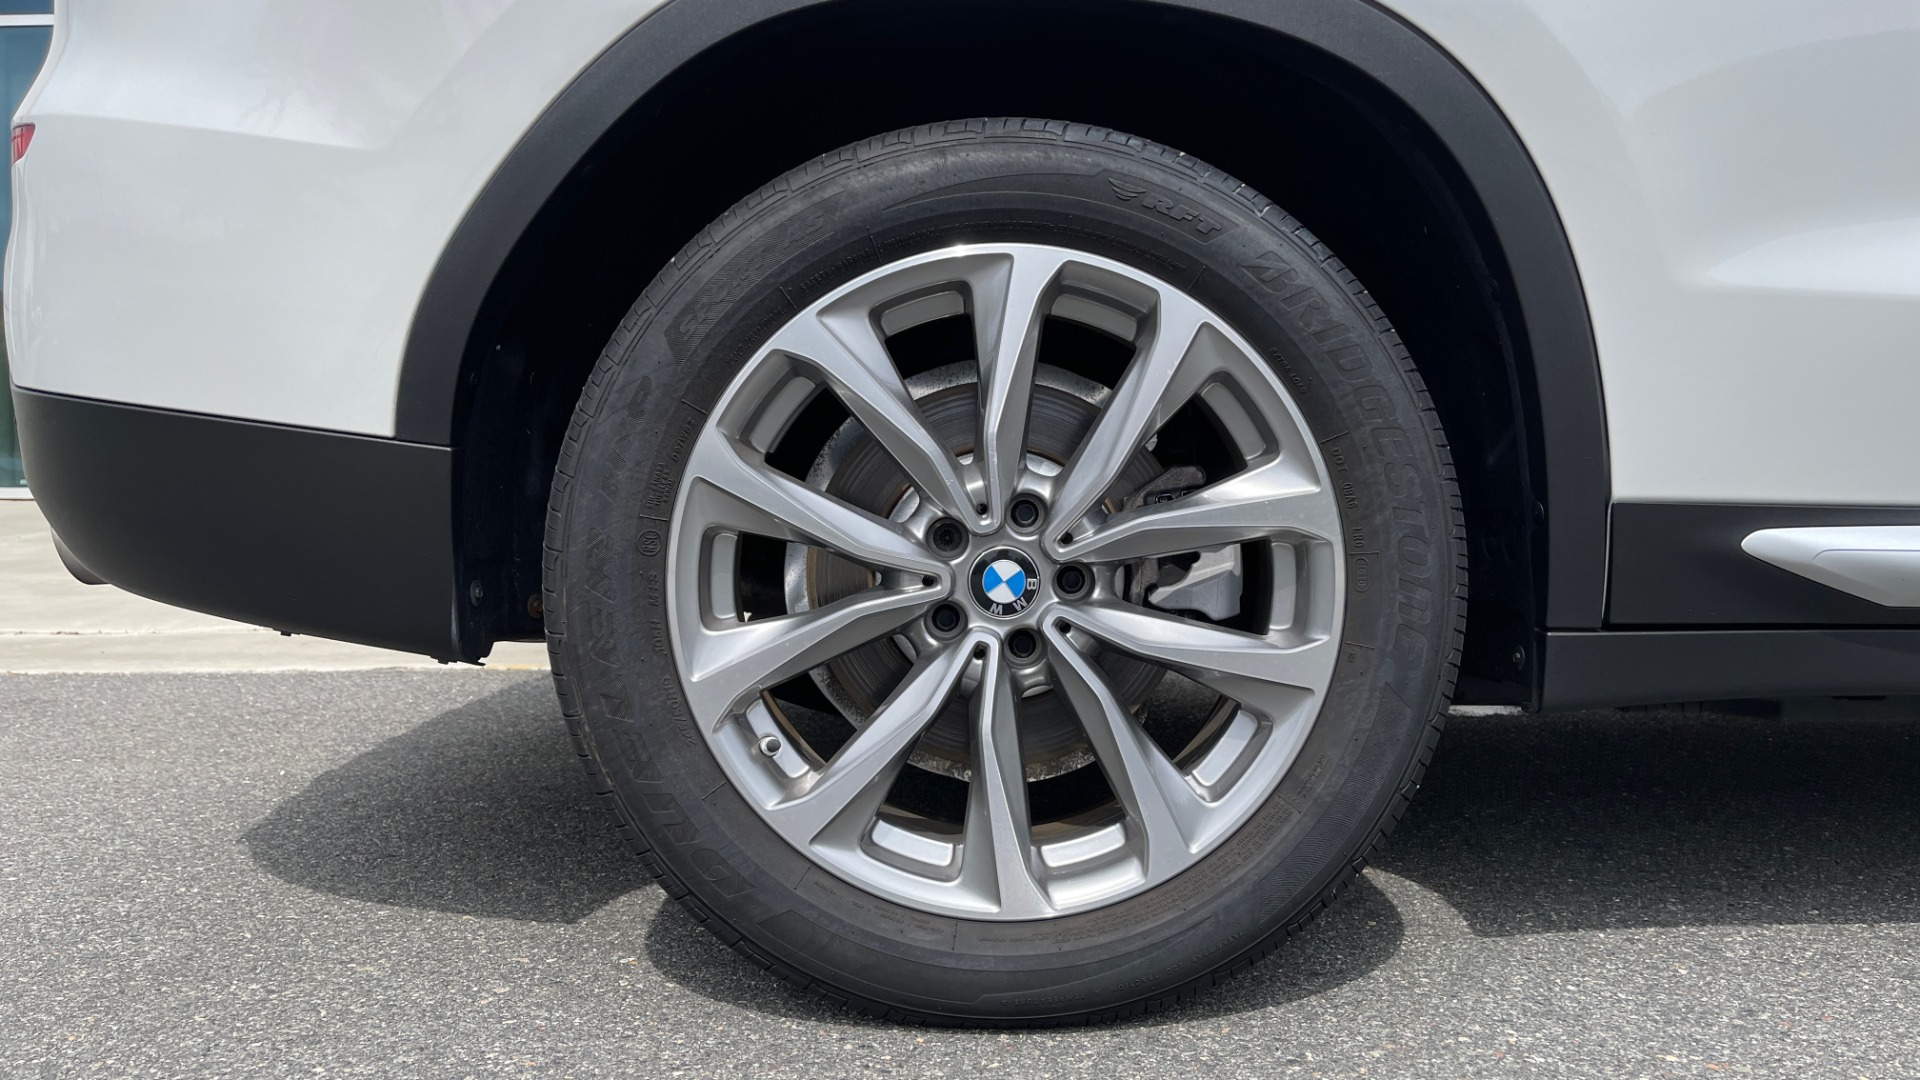 Used 2018 BMW X3 XDRIVE30I / NAV / PANO-ROOF / HTD STS / PARK DIST CNTRL / REARVIEW for sale $38,995 at Formula Imports in Charlotte NC 28227 66